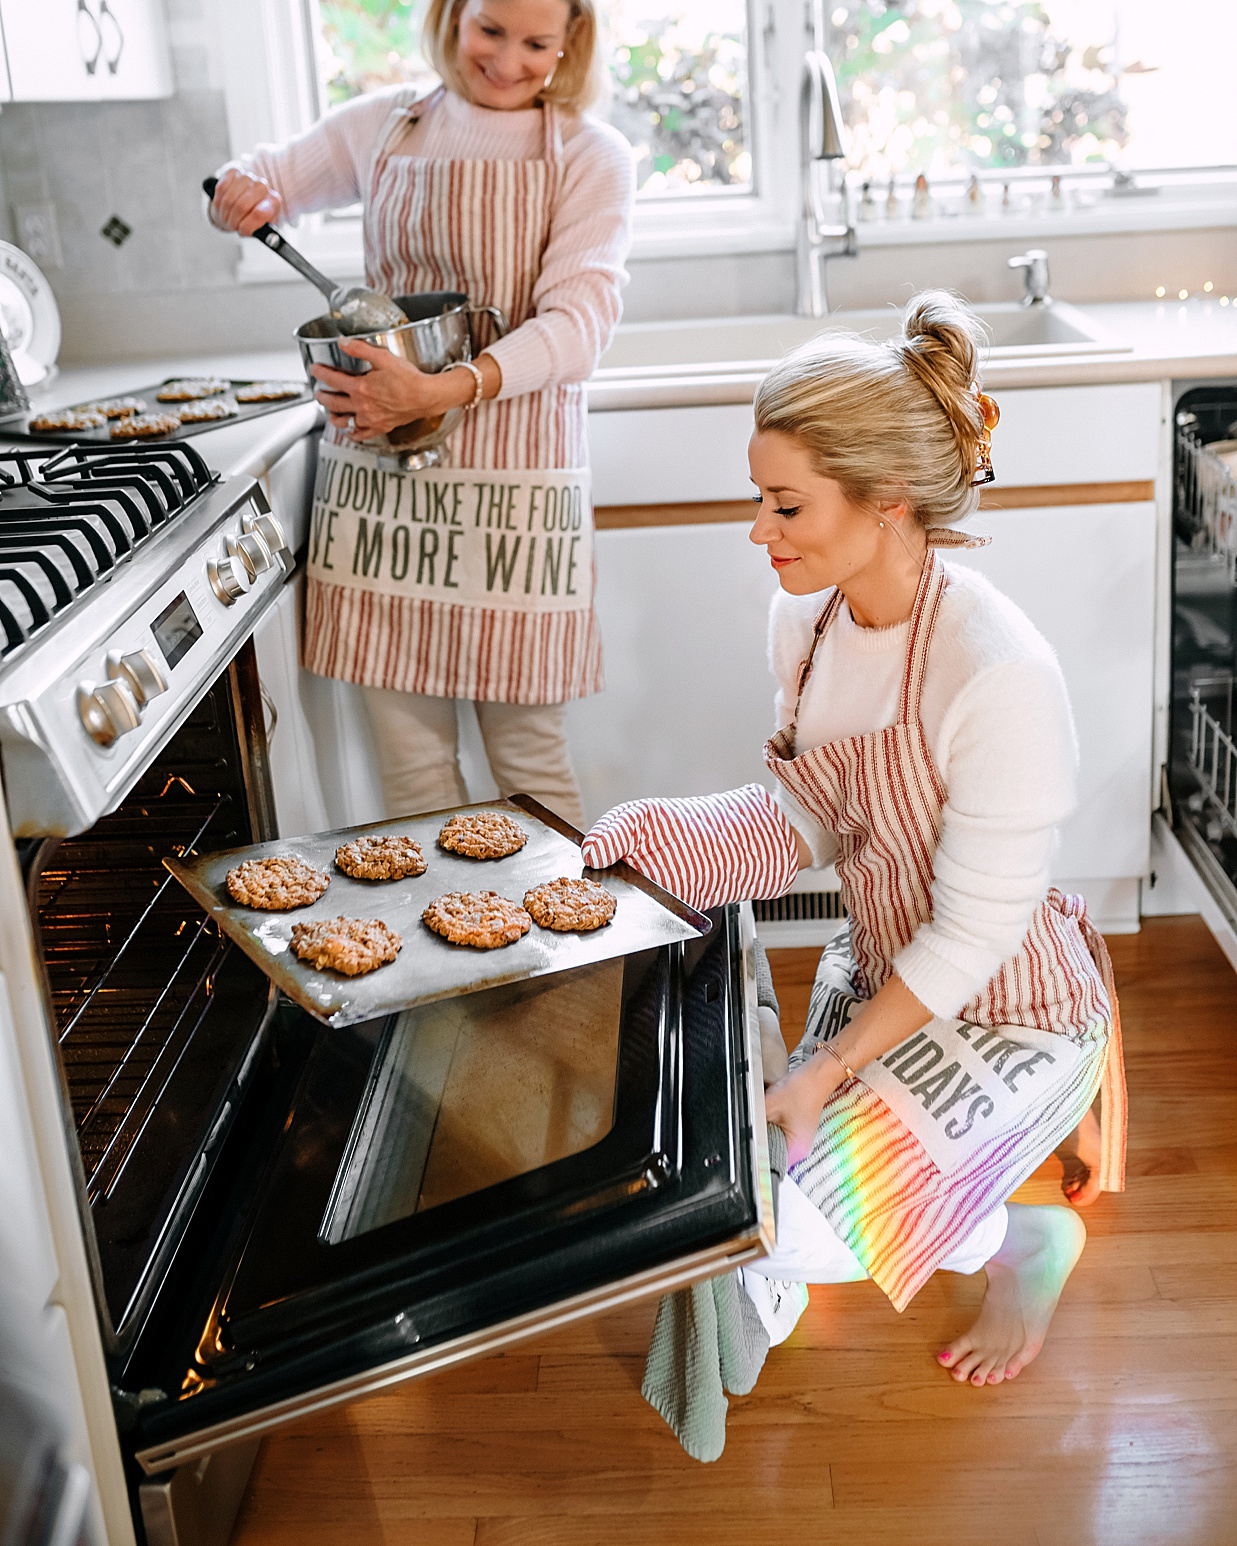 olivia rink christmas, 2020 christmas baking recipe, 2020 holiday baking, 2020 holiday baking recipe, food blogger, olivia rink recipe,